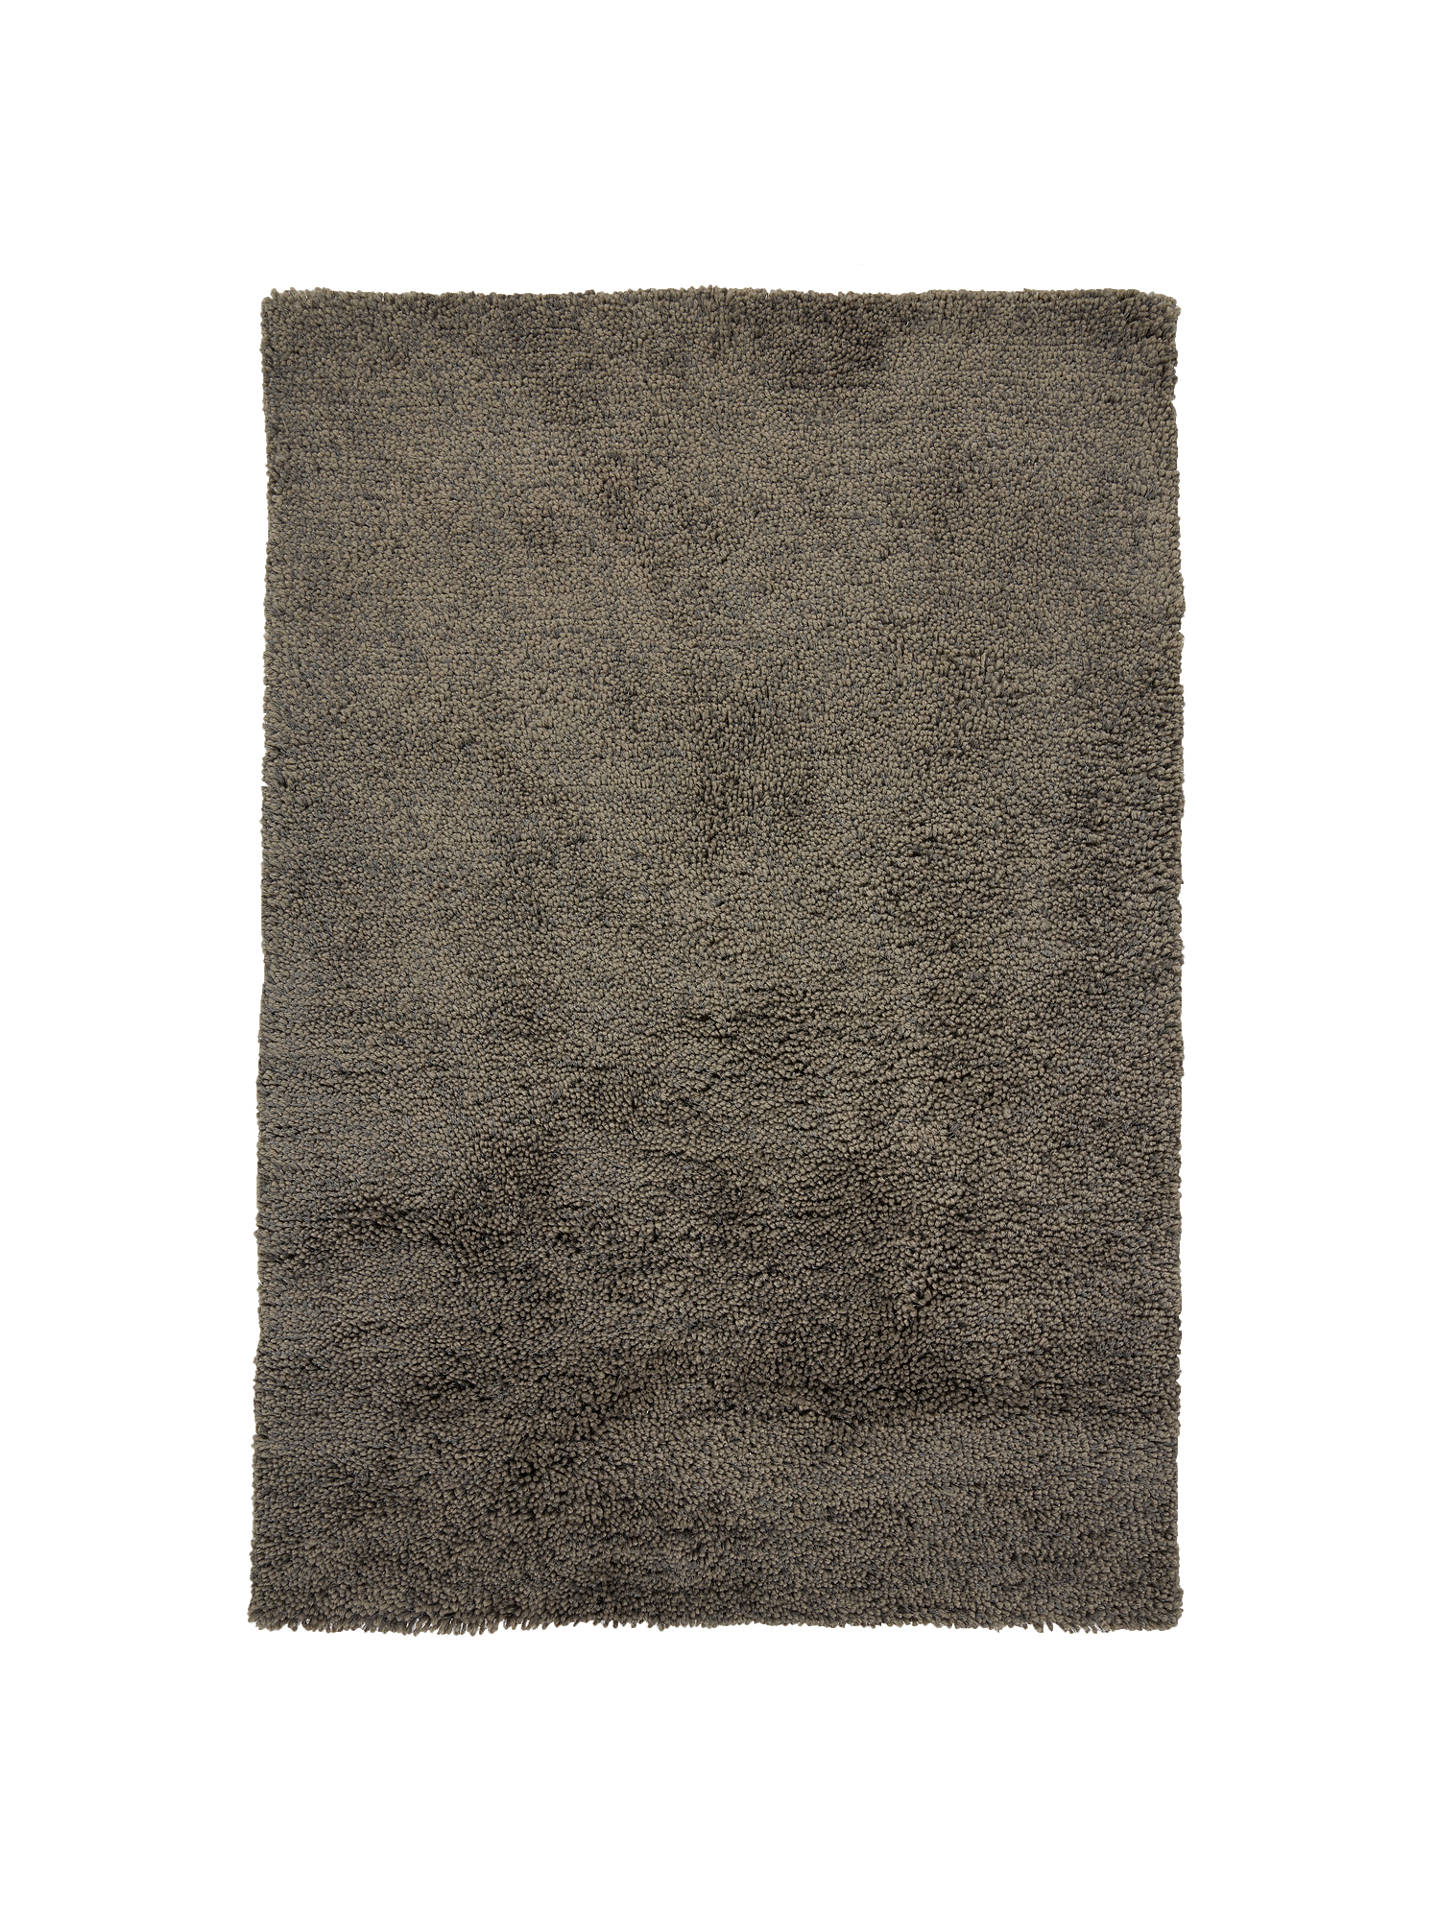 John Lewis Partners Bliss Shaggy Rug At